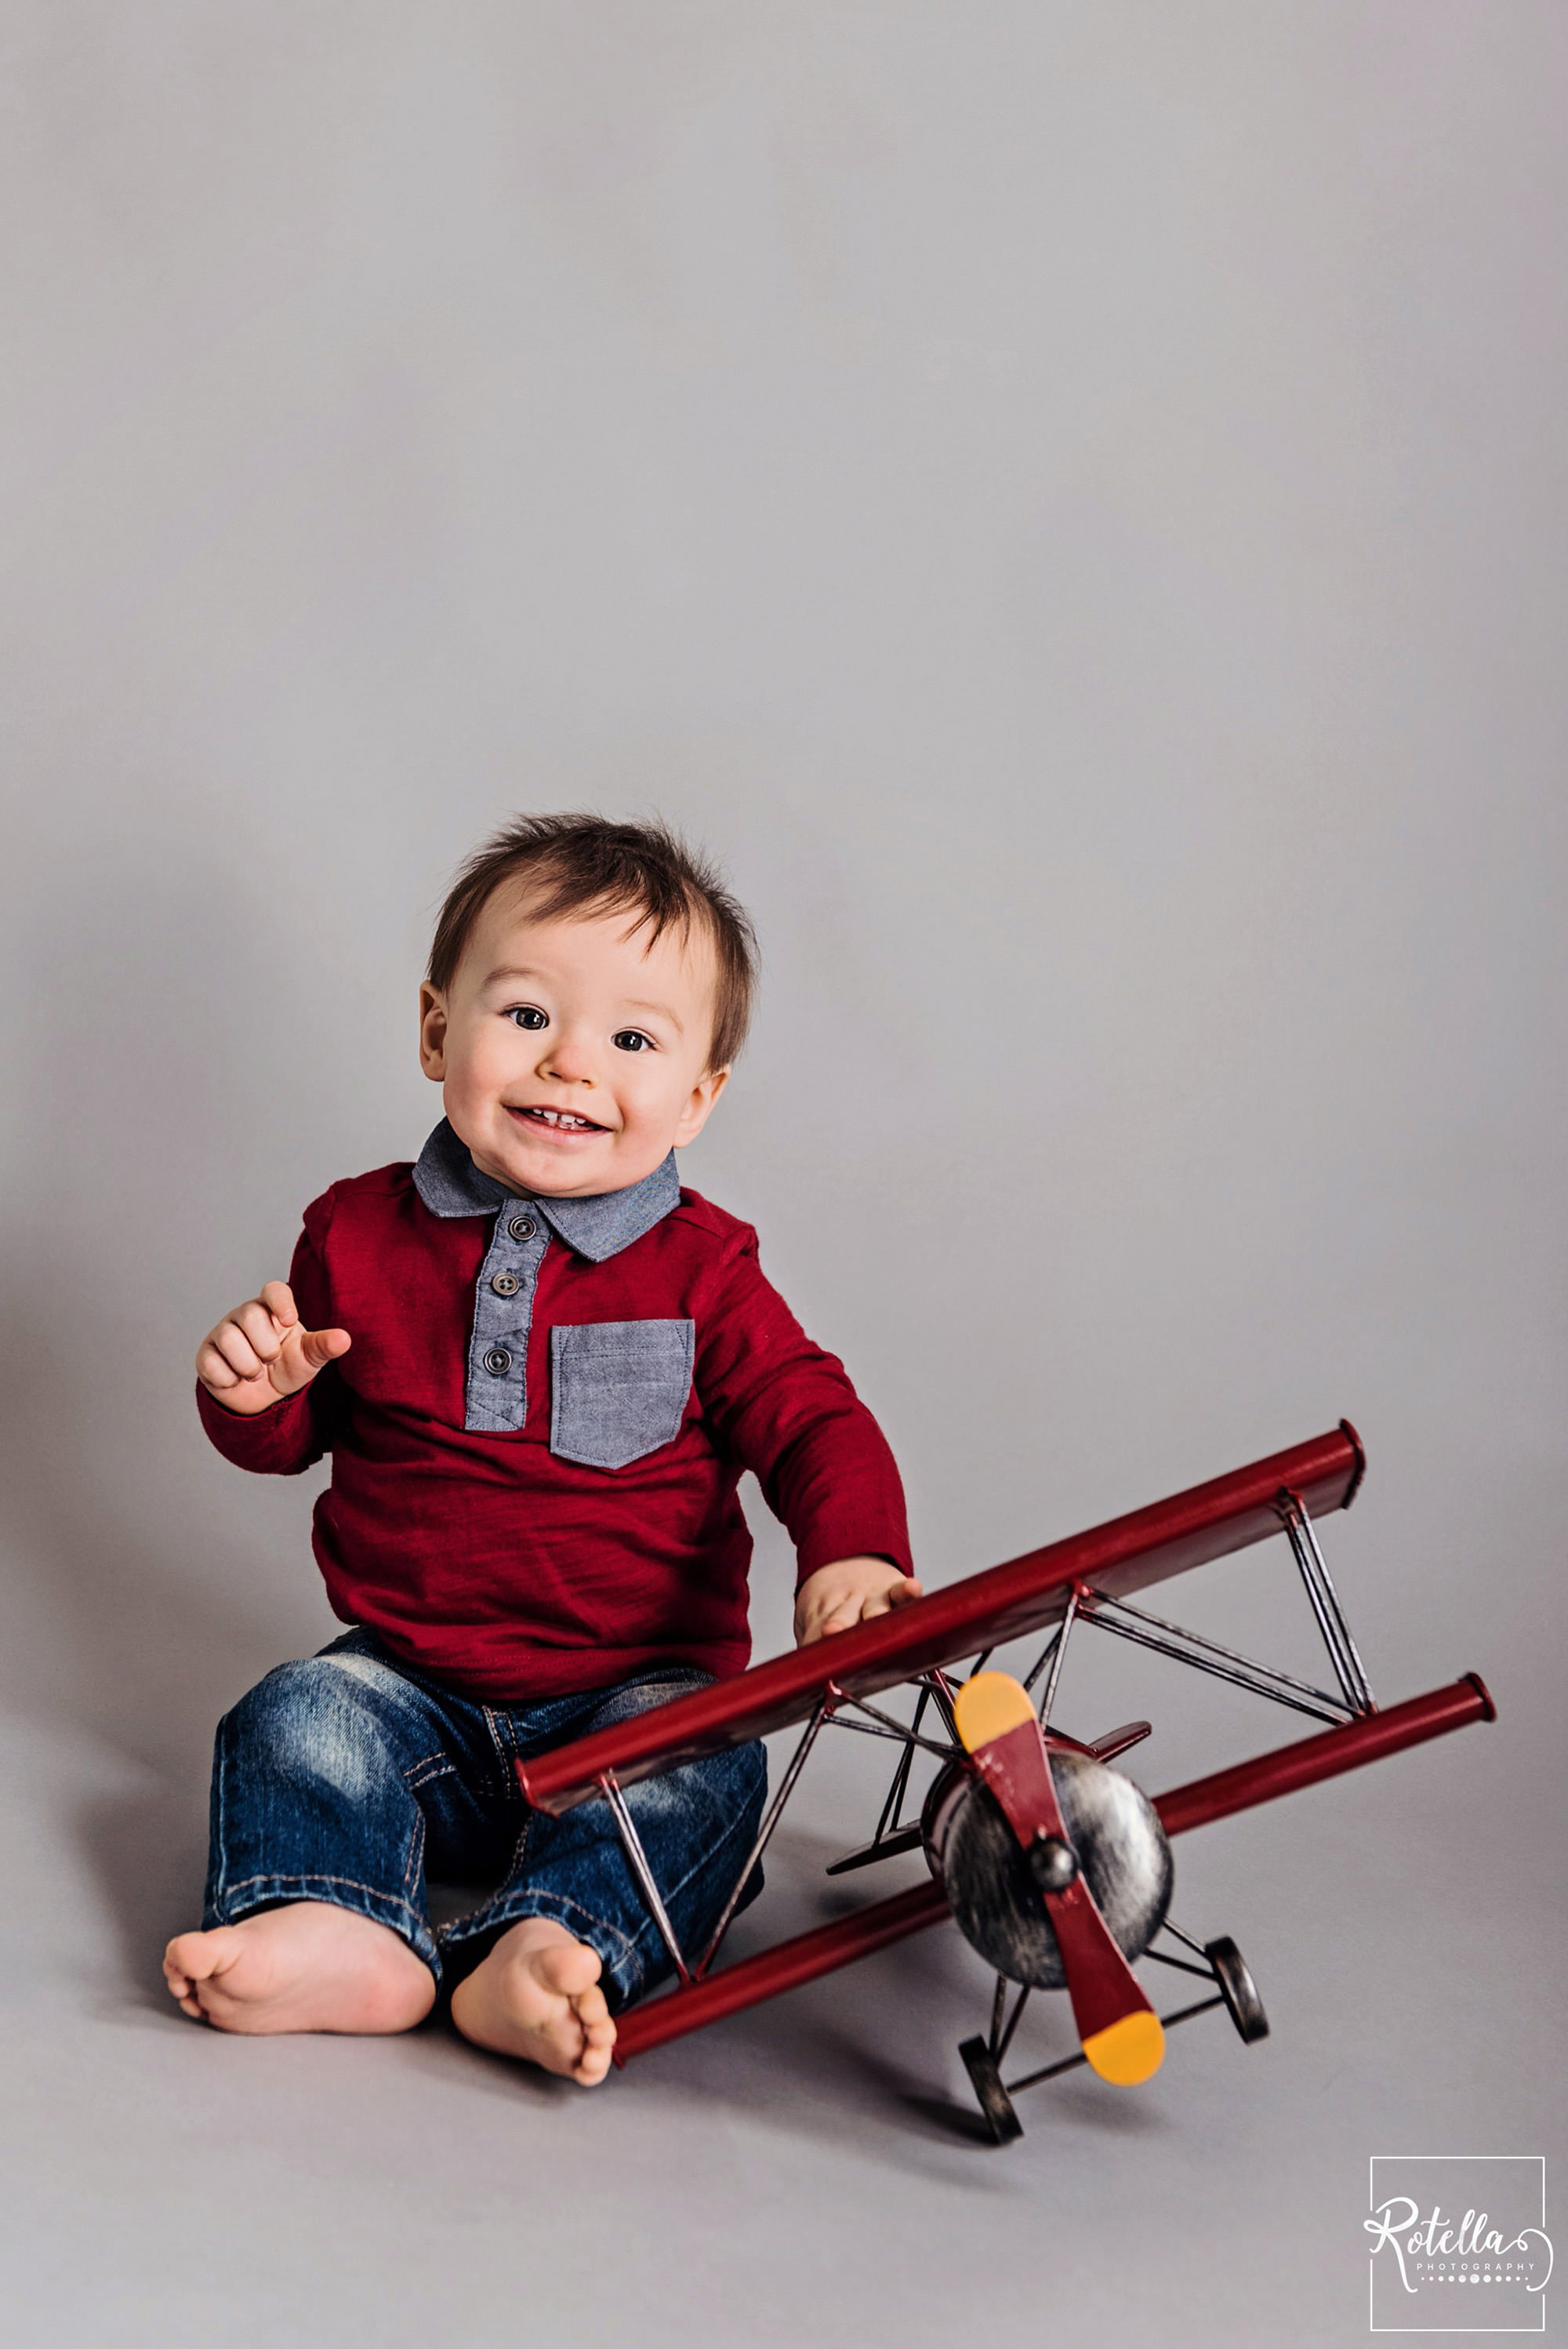 Rotella Photography - baby playing with red plane on grey backdrop